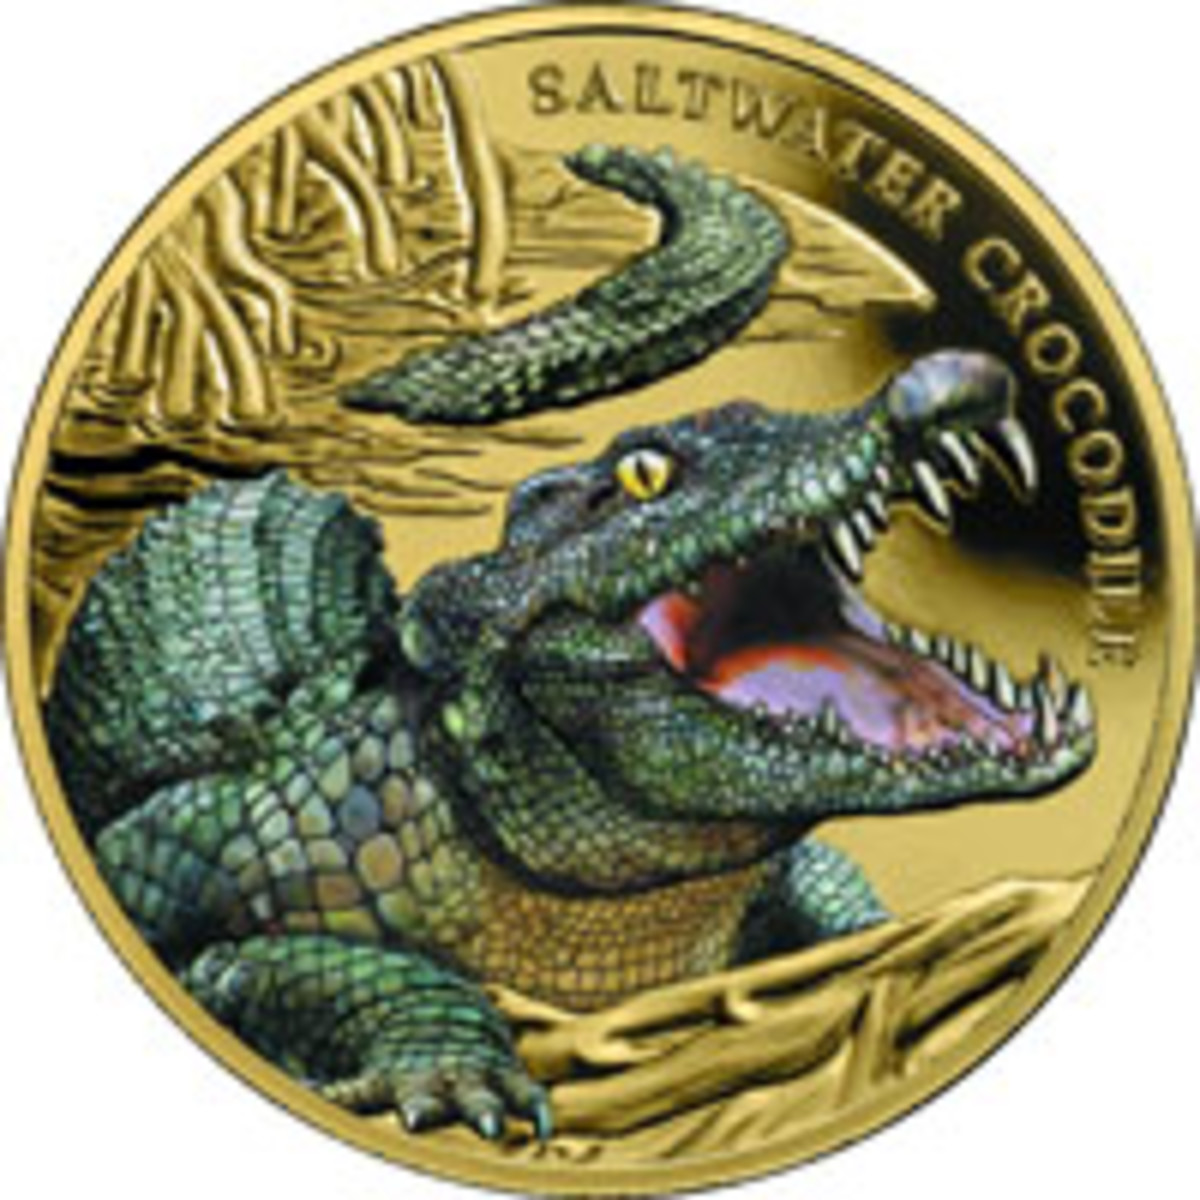 A smiling Saltwater Crocodile invites collectors to dinner on the reverse of this 2018 gold Niuean $100. (Image courtesy Downies)